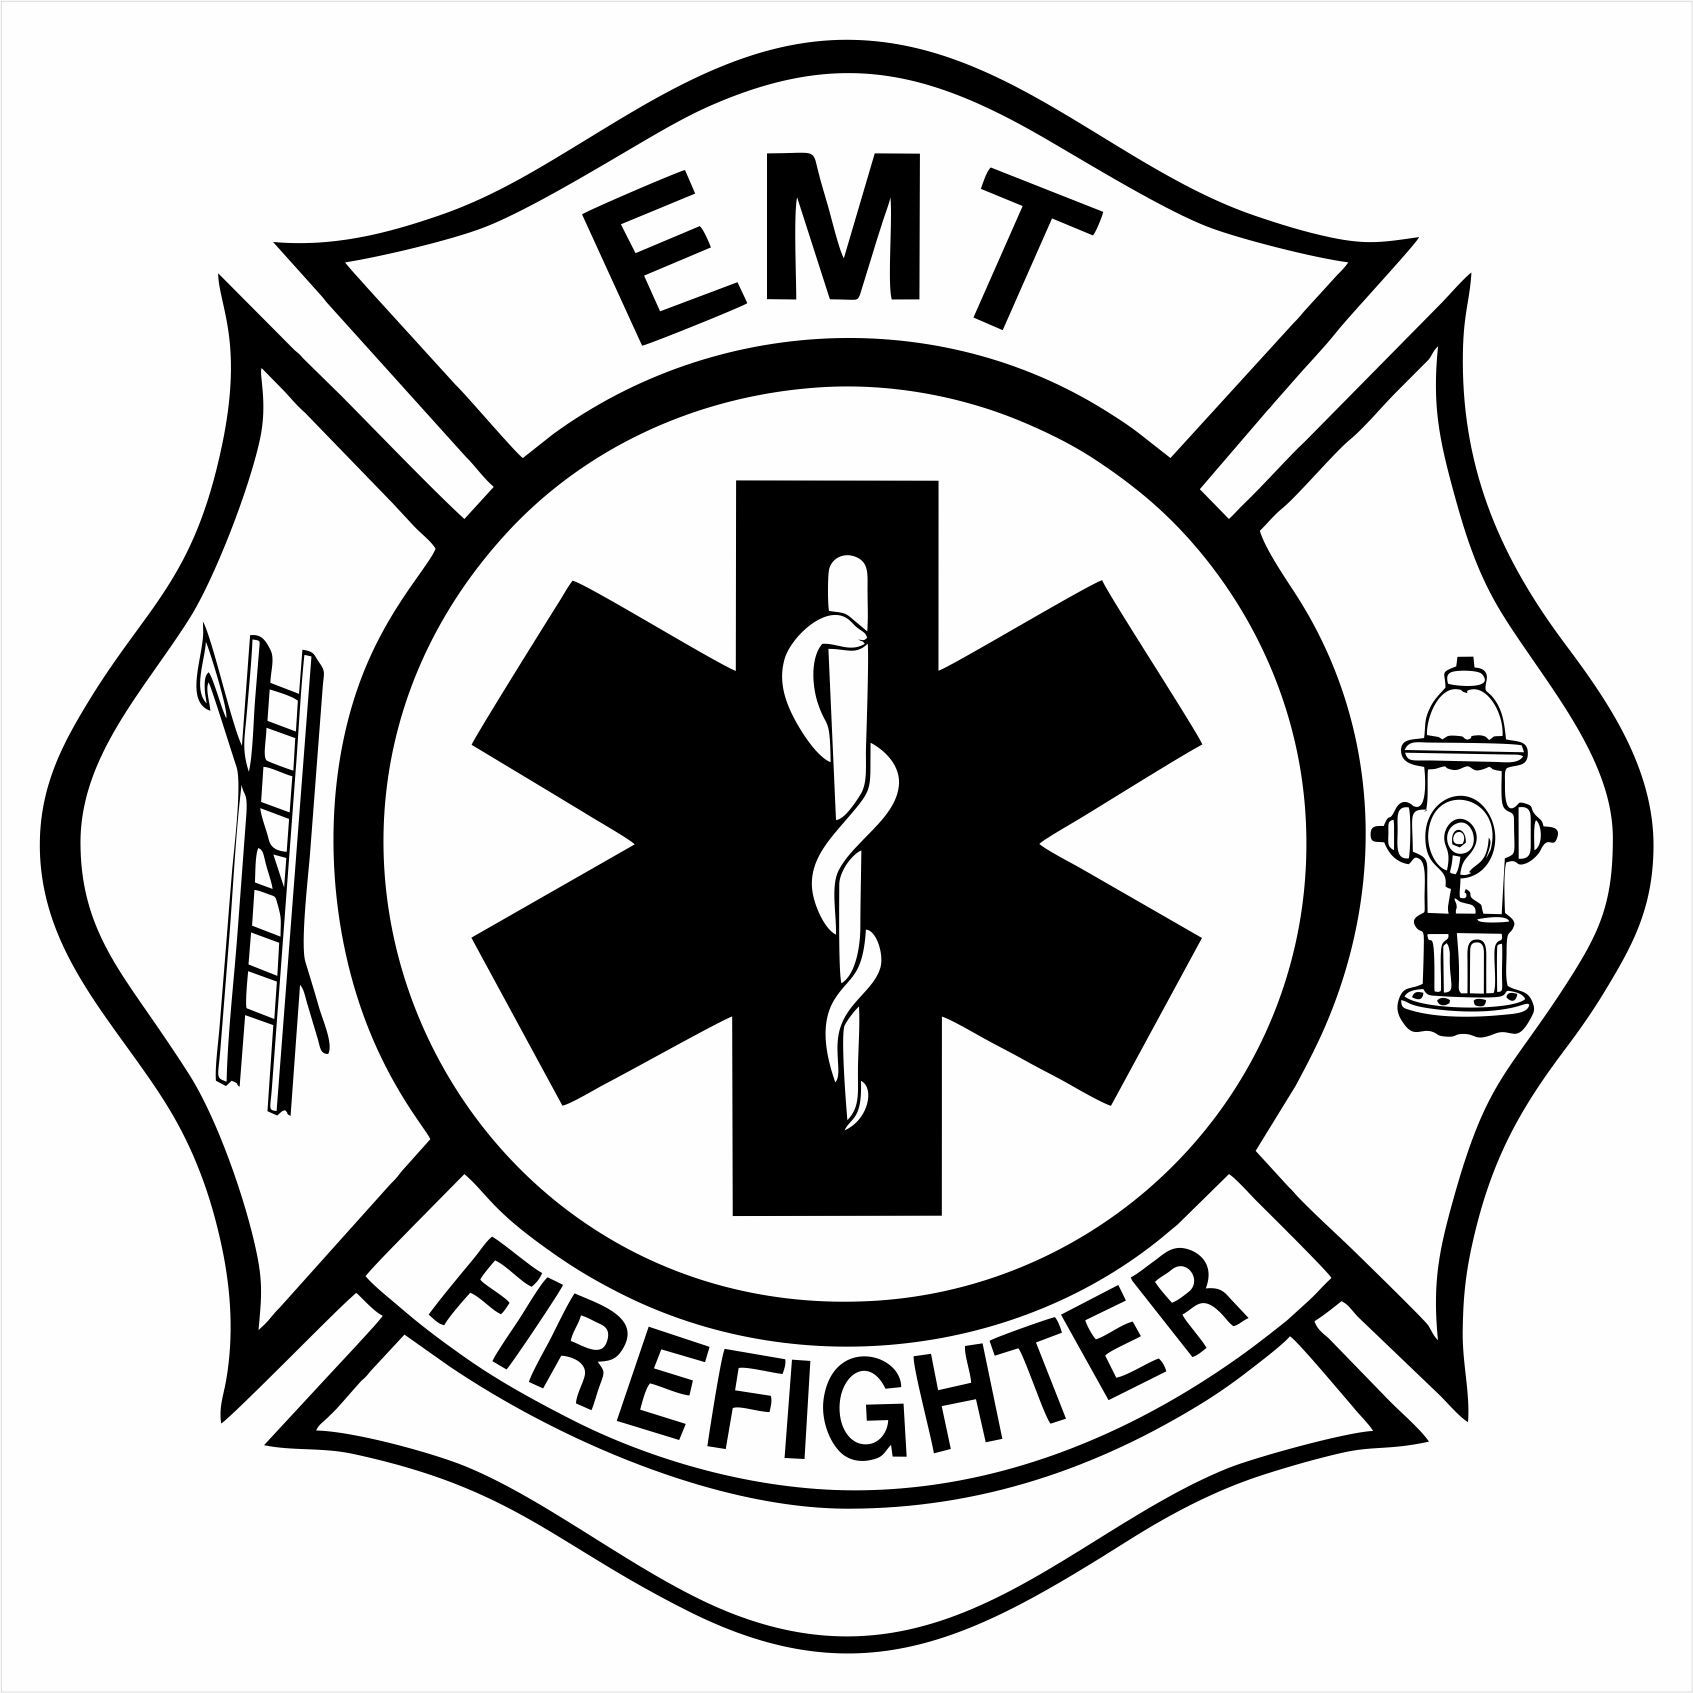 """EMT/Firefighter Maltese Cross"" Police themed design can"